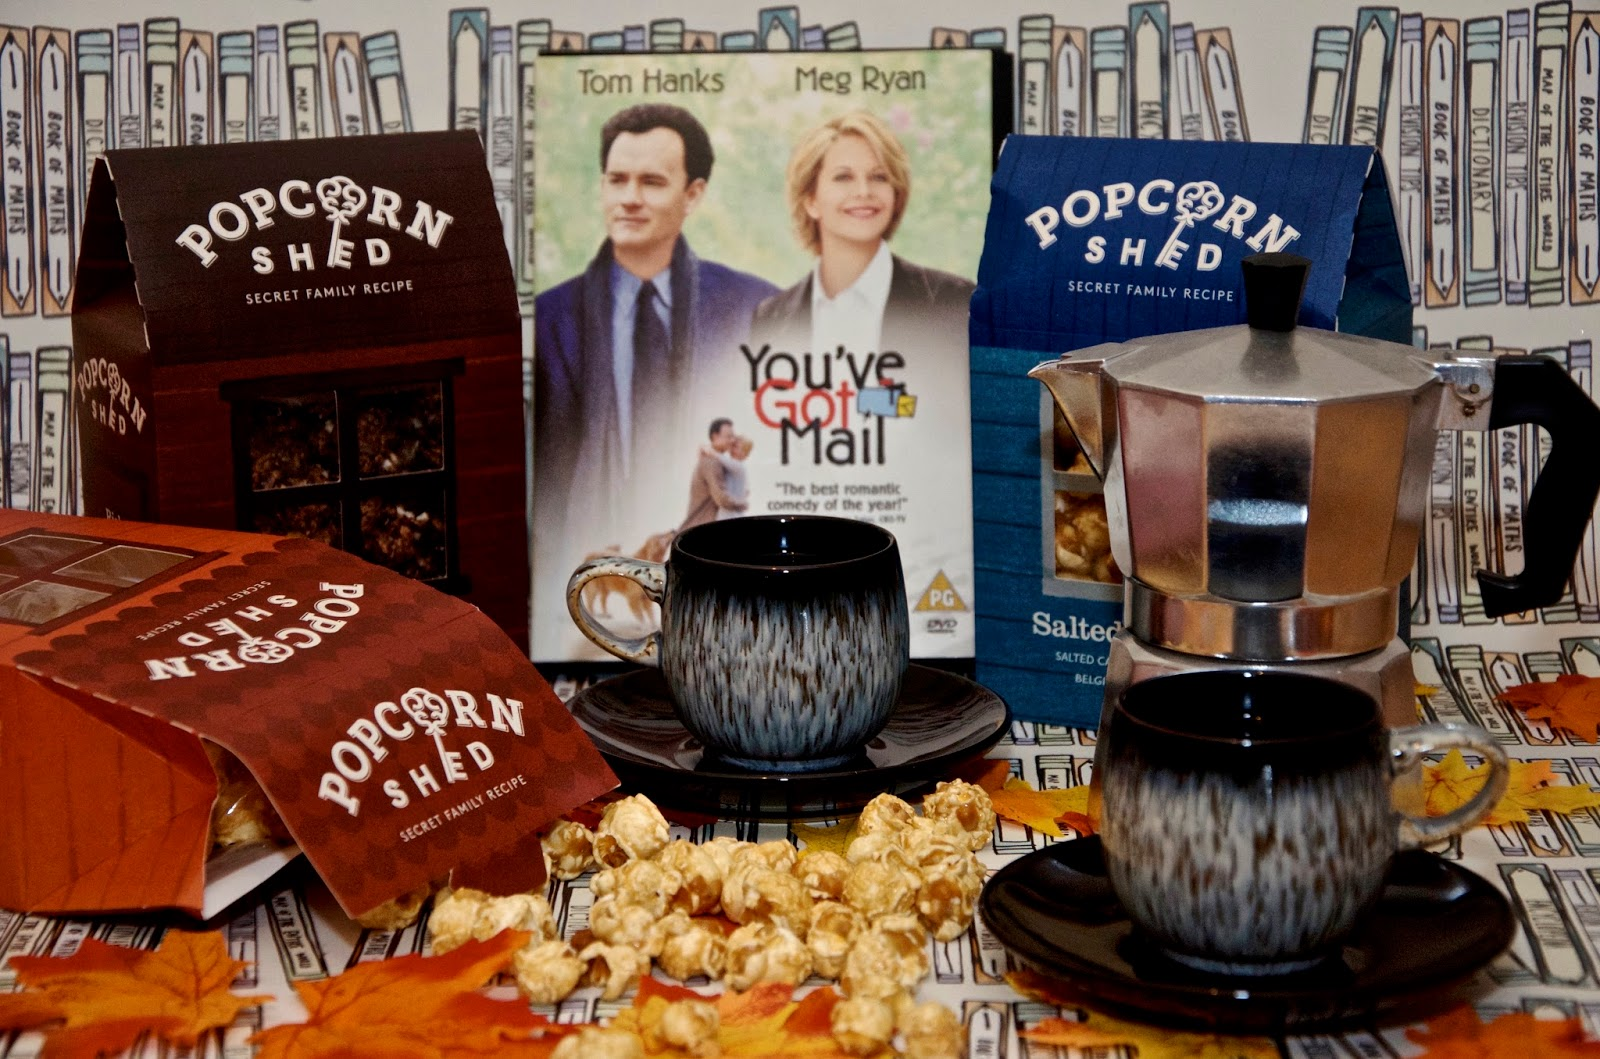 popcorn, cups and saucers, autumn leaves, coffee maker